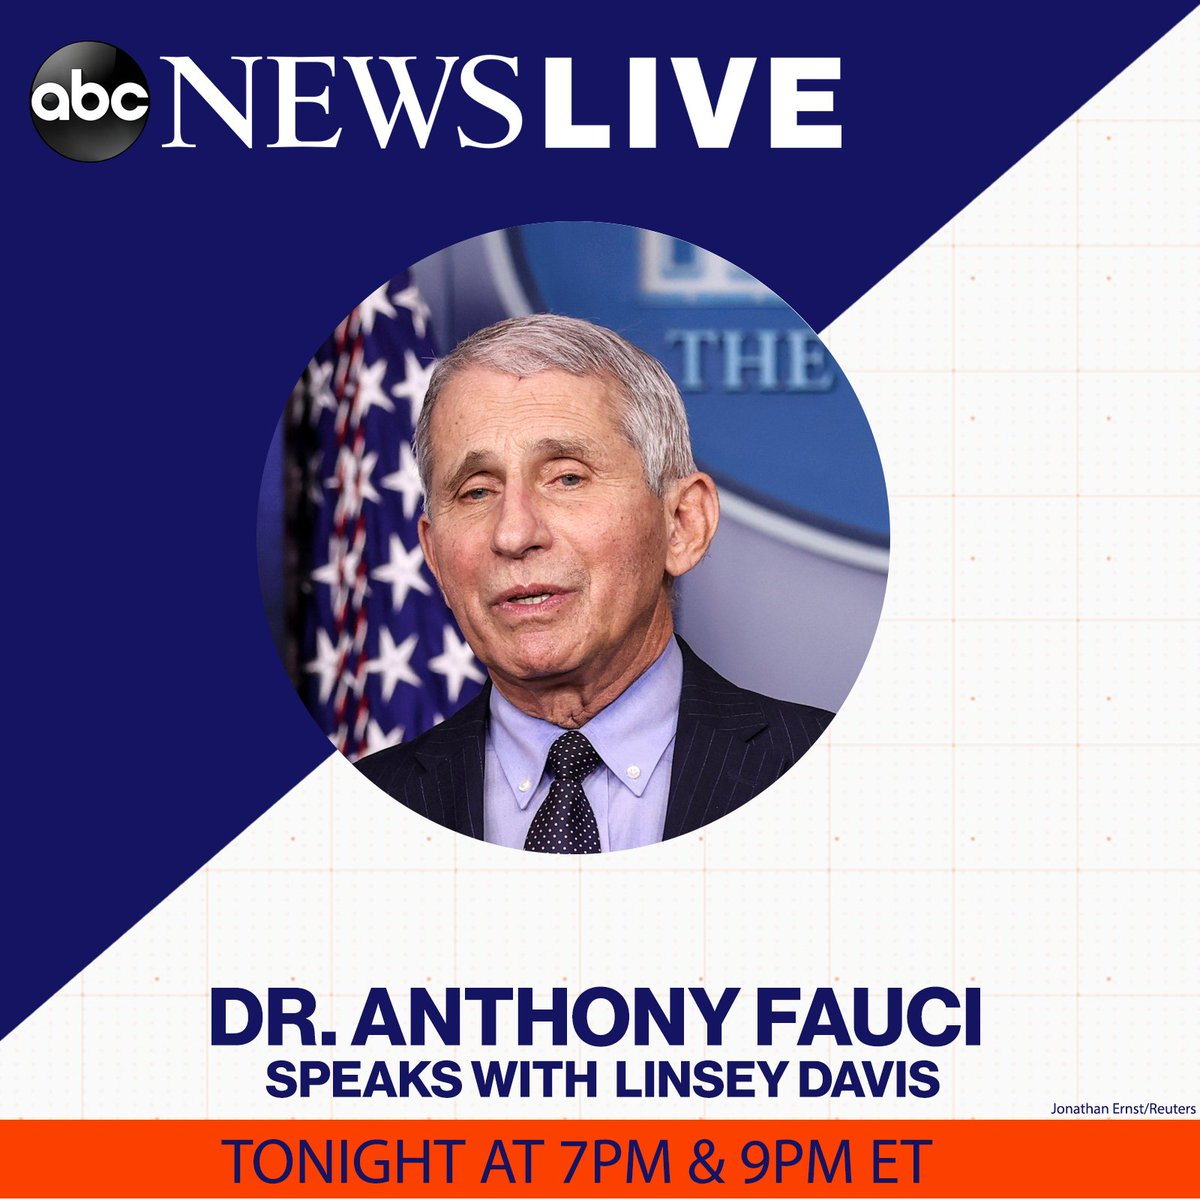 TONIGHT: Dr. Anthony Fauci sits down with @LinseyDavis to discuss COVID-19 vaccine distribution, his time working for the Trump administration and what to know about emerging variants.   Tune in to @ABCNewsLive at 7PM & 9PM ET for the full interview.